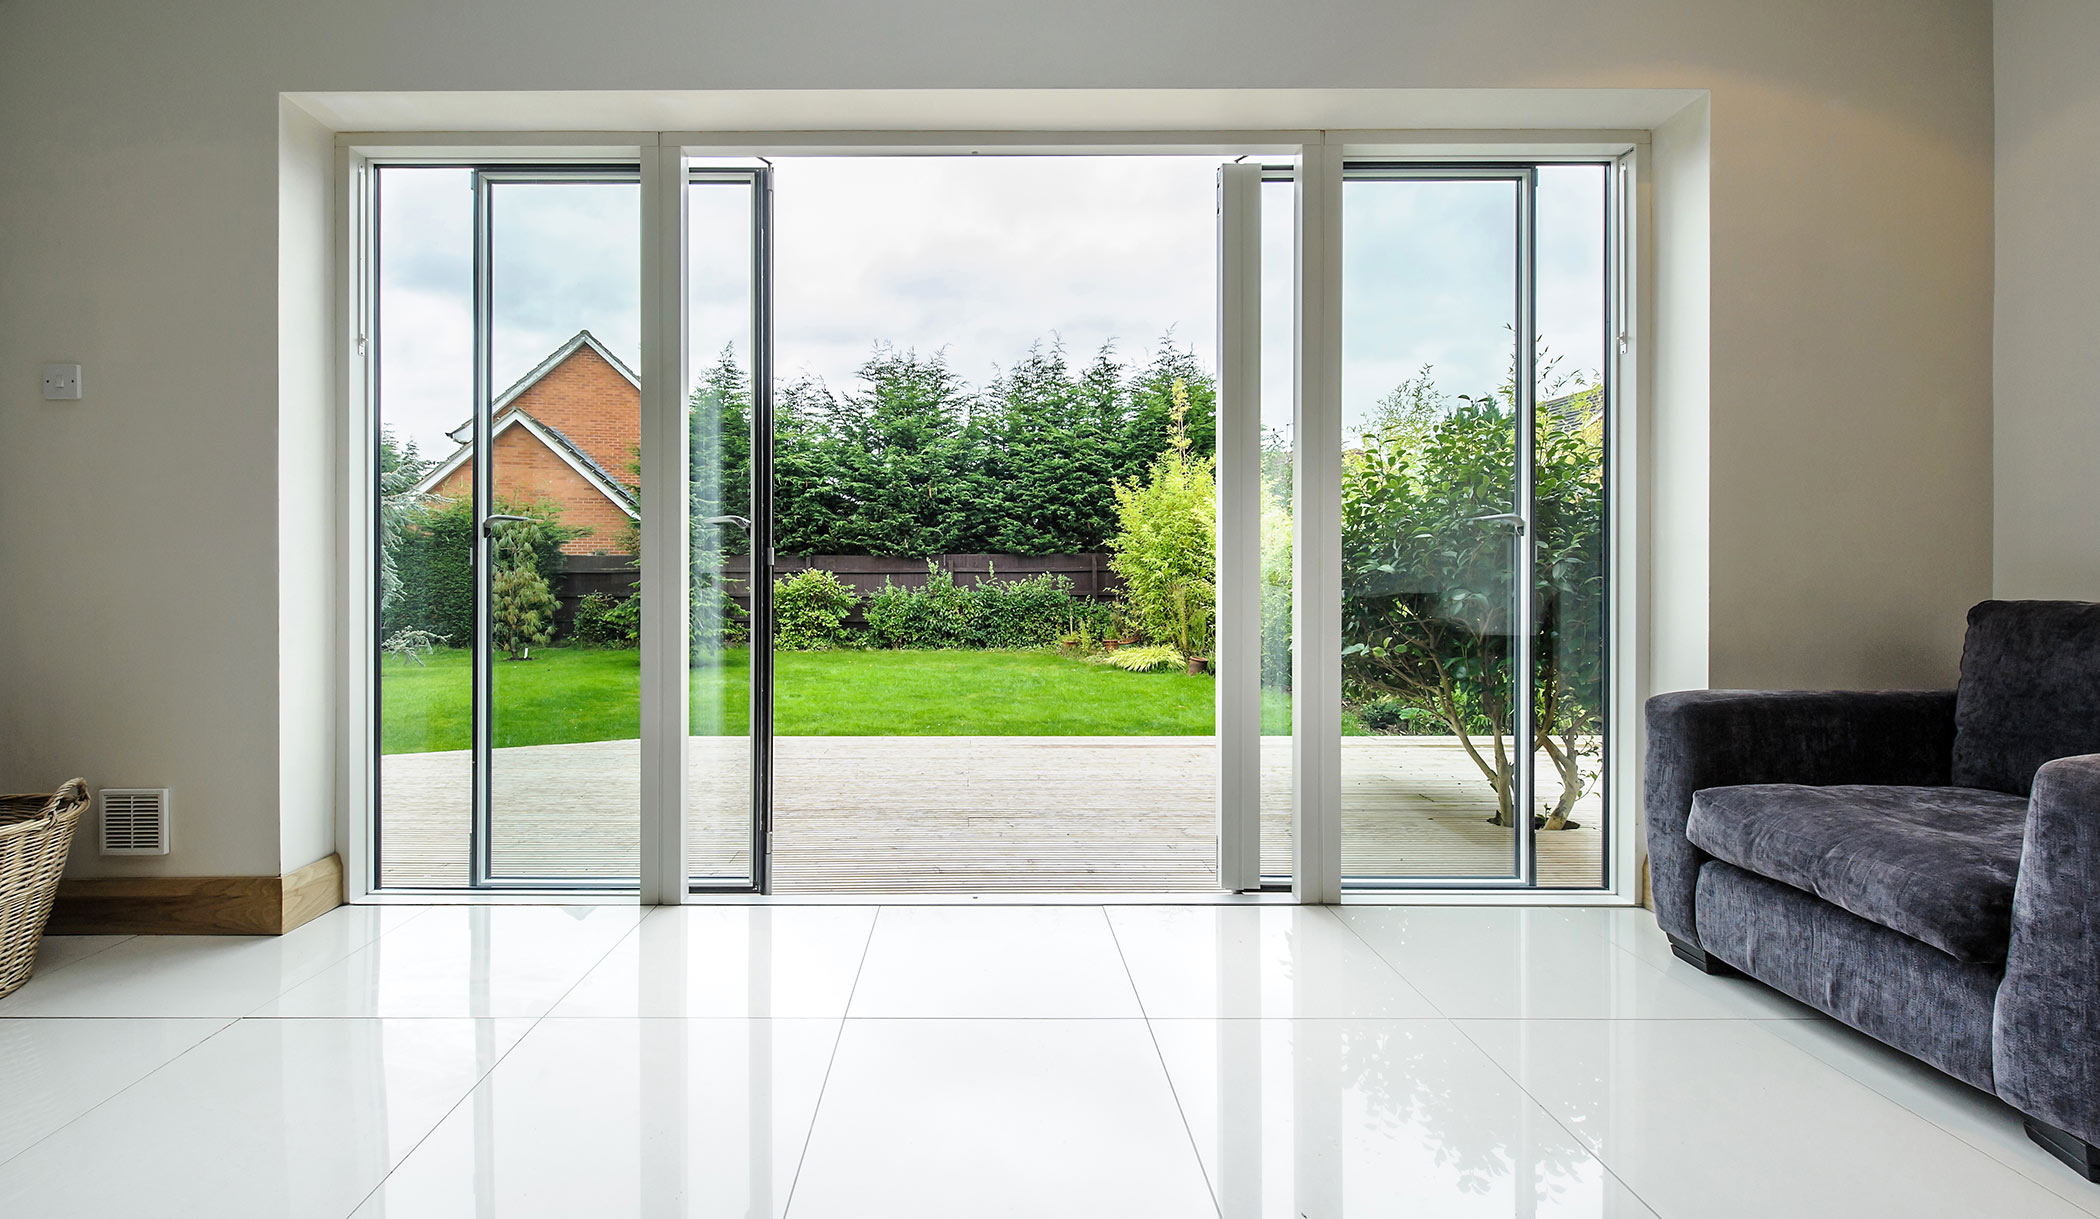 How Do You Go About Selecting High-quality Aluminium Doors For Your Home?